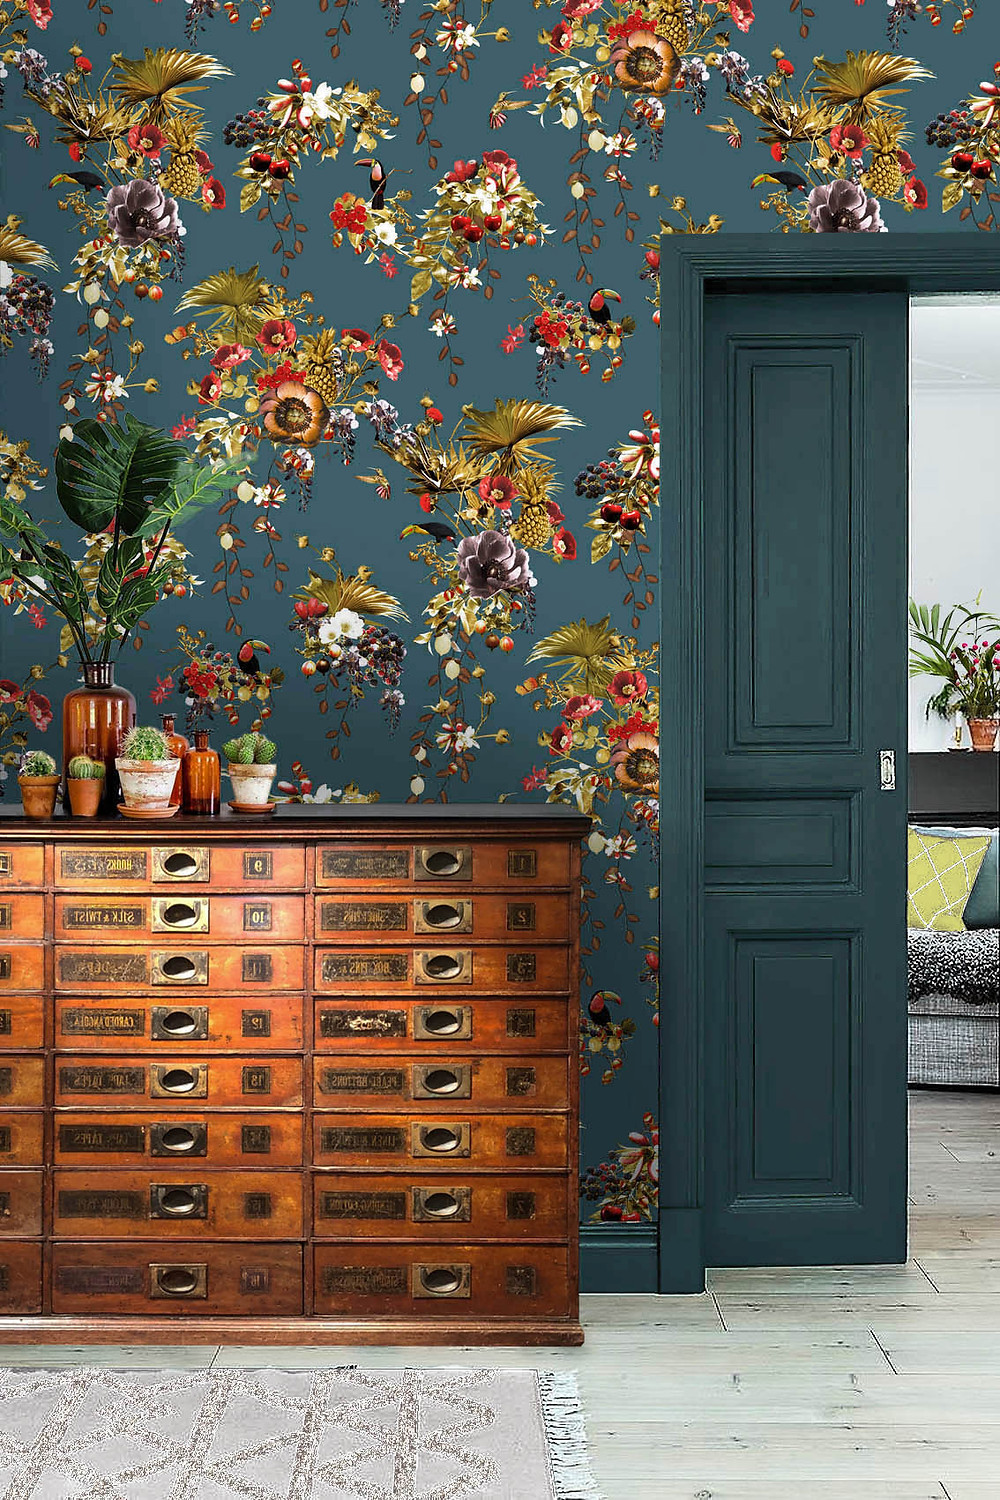 Hallway wallpaper with toucans made of non-woven paper by Good and Craft, Good & Craft wallpaper